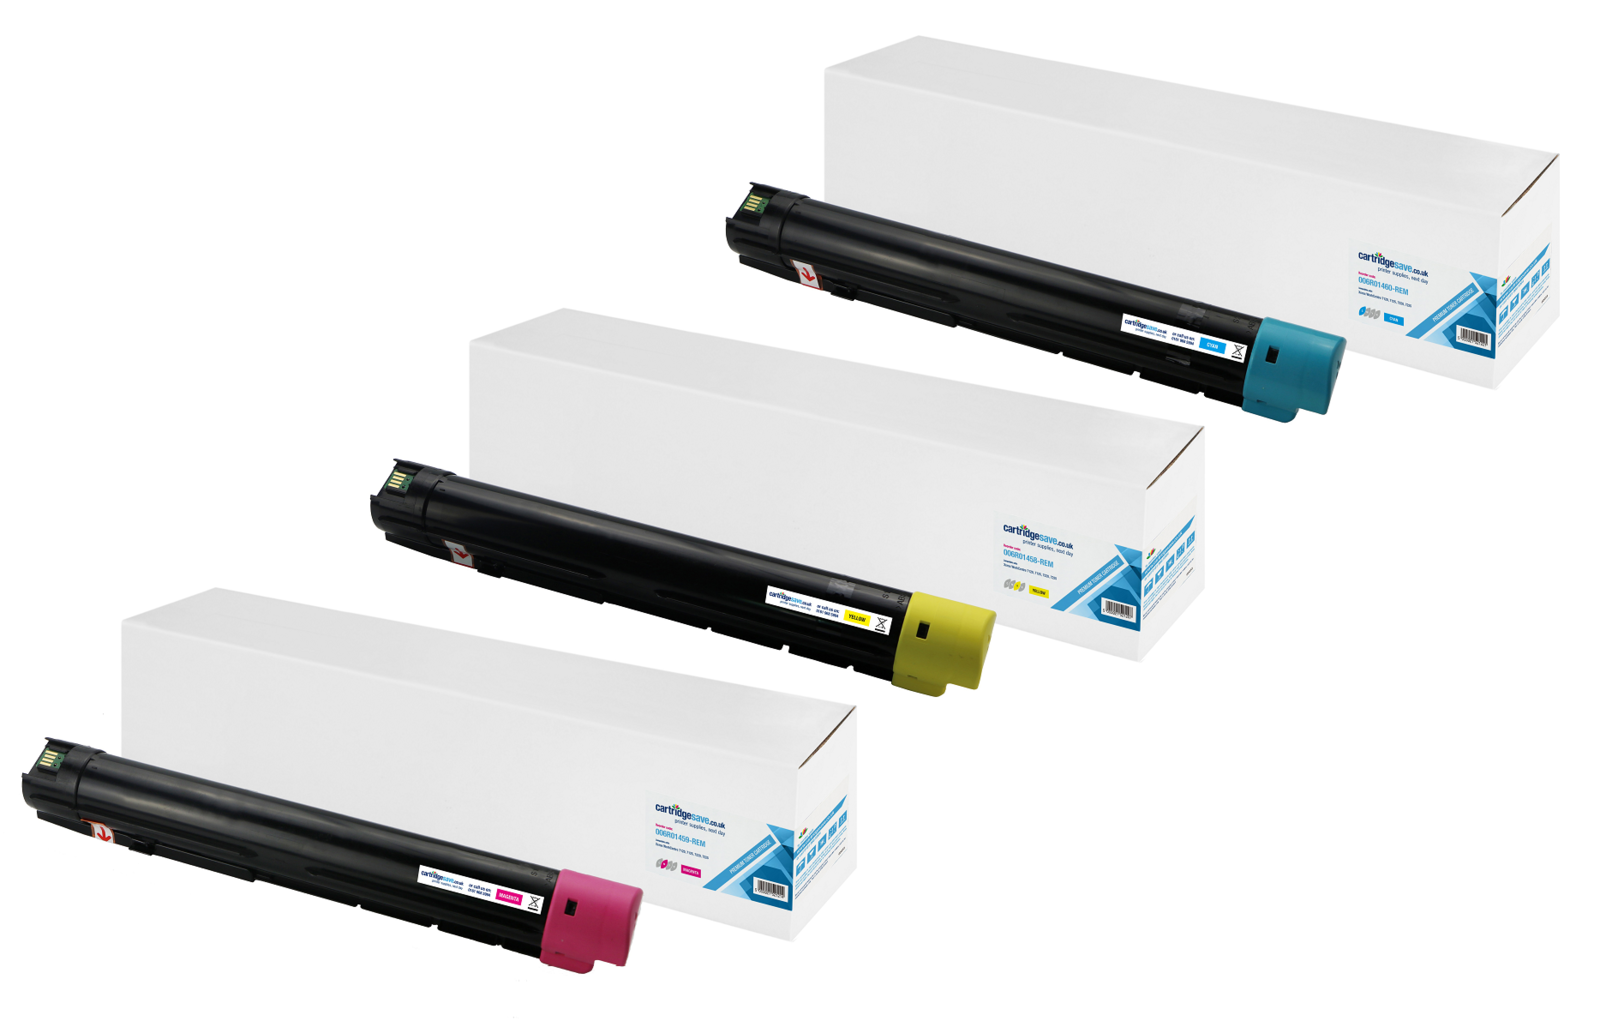 Compatible 3 Colour Xerox 006R014 Toner Cartridge Multipack - (006R01458/59/60)